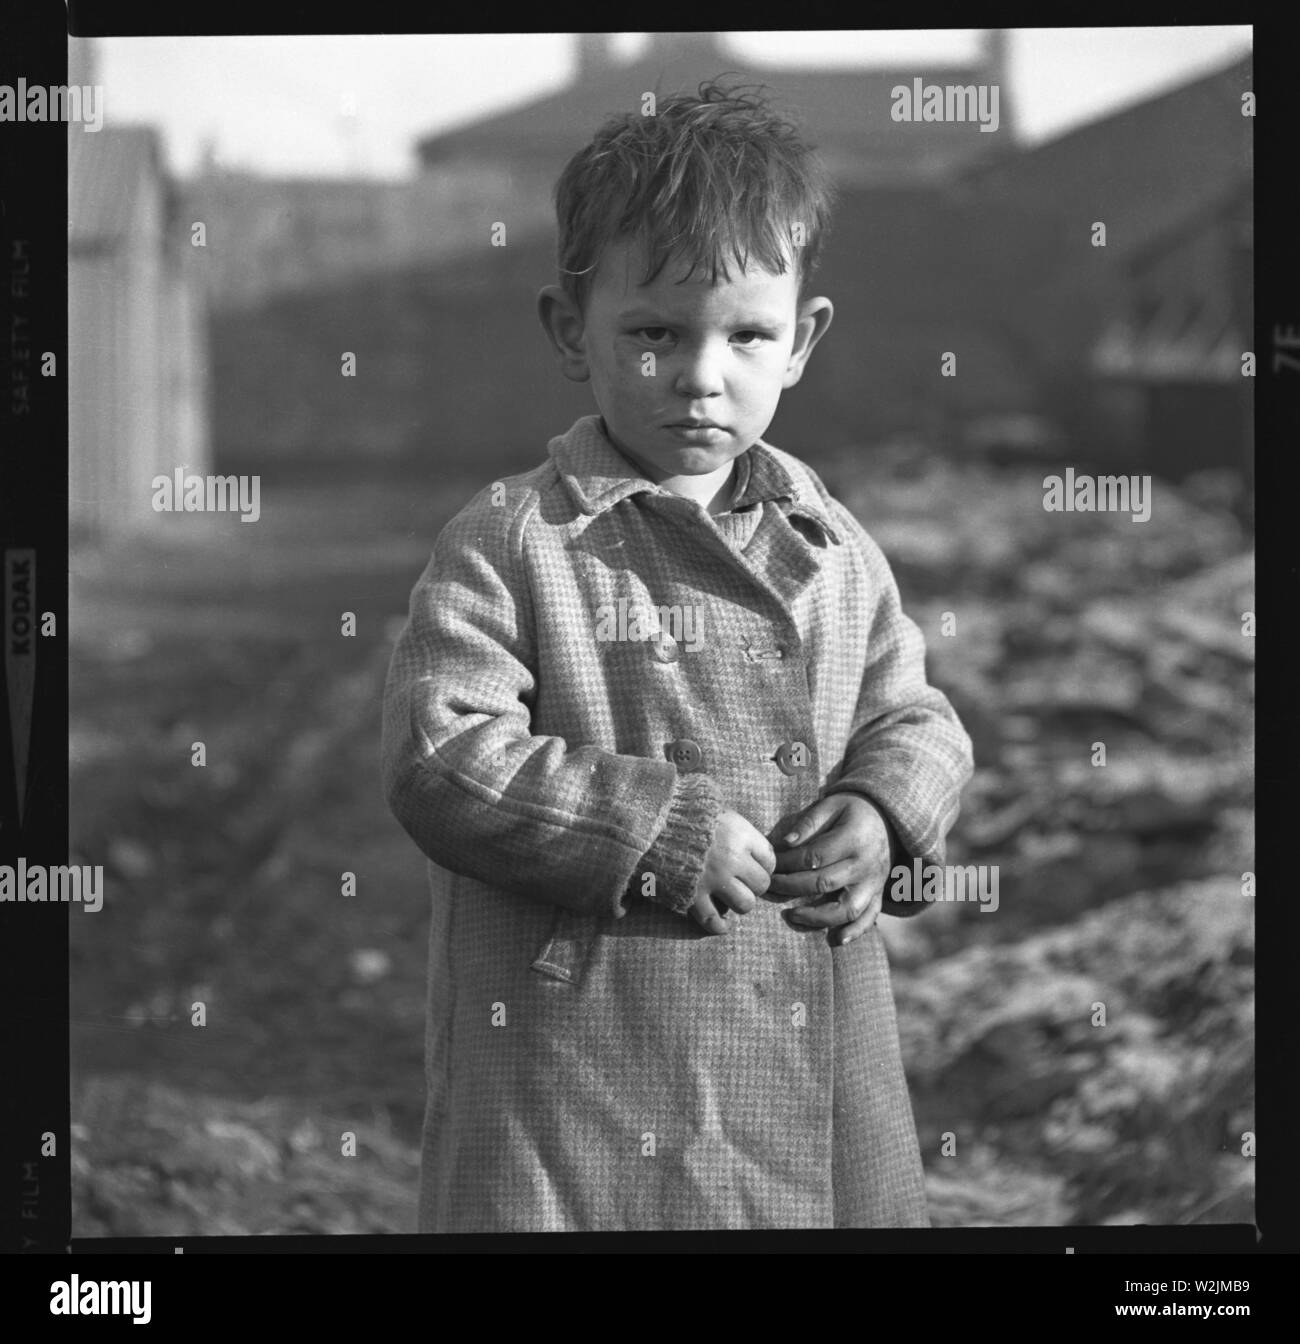 A telling portrait of a young boy, probably near the Sandyford area in Dublin, Ireland c1960 Photo by Tony Henshaw - Stock Image